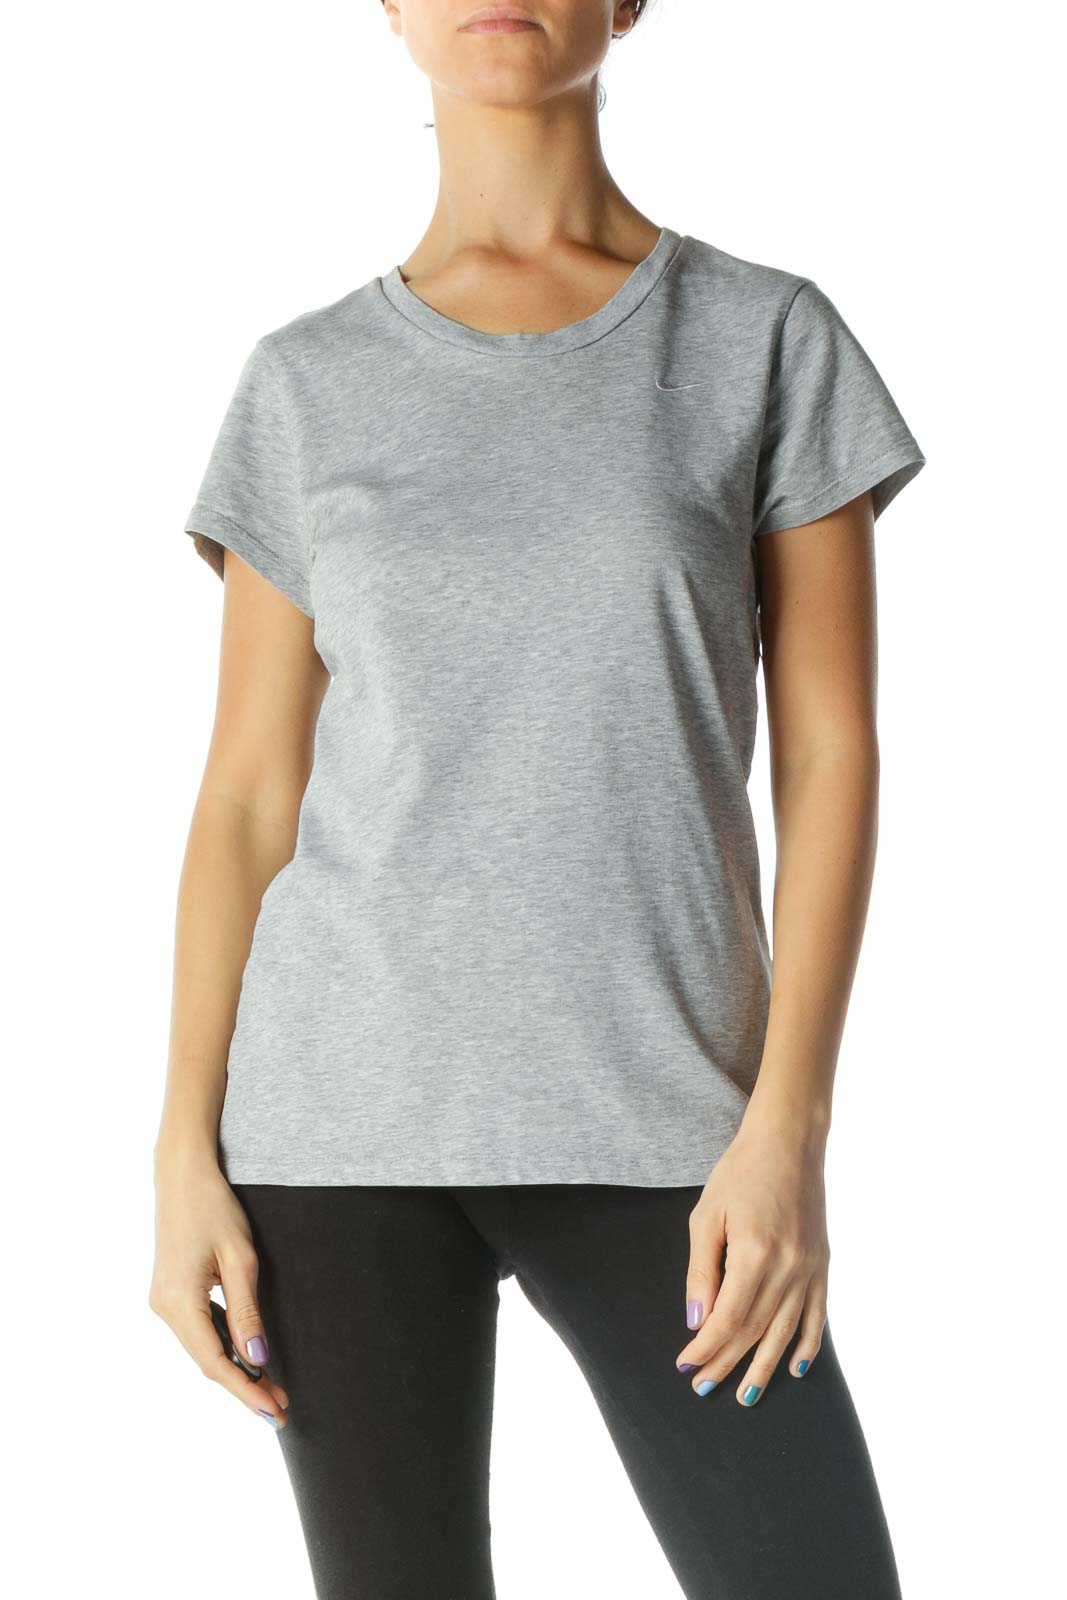 Gray Embroidered Nike T-Shirt